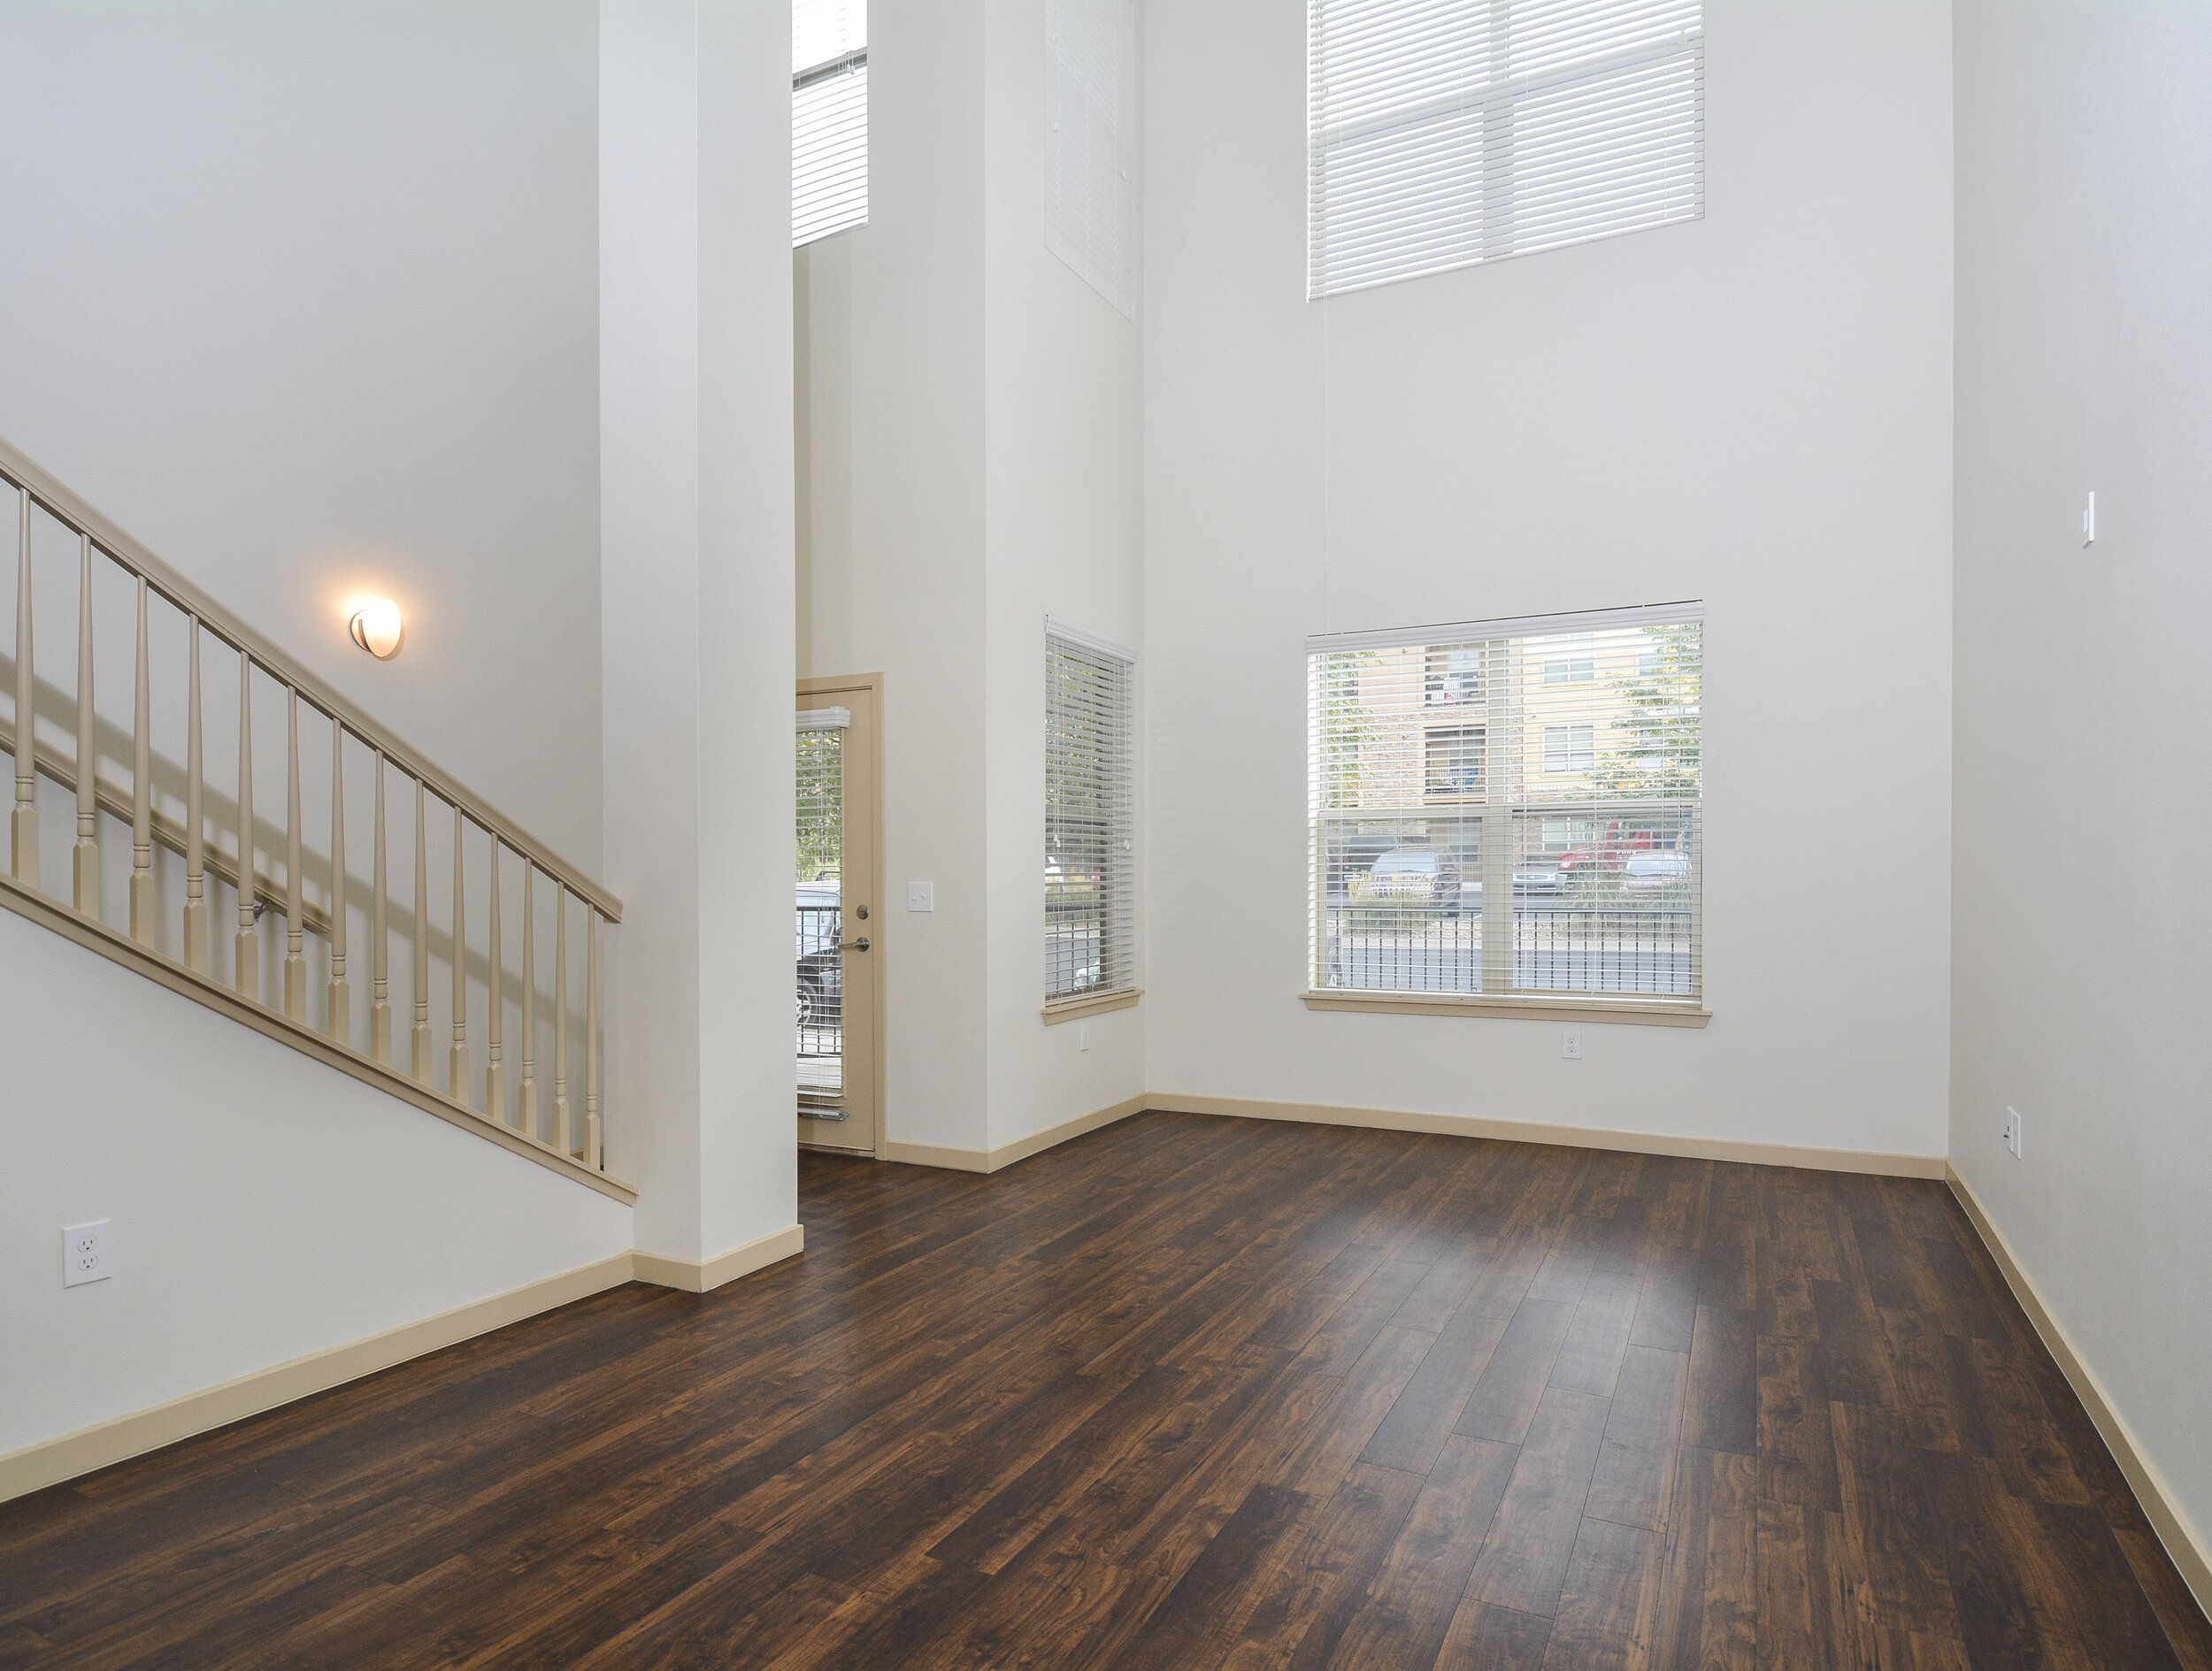 06 Mulitlevel Units Included Soaring Ceilings With Ample Natural Light.jpg